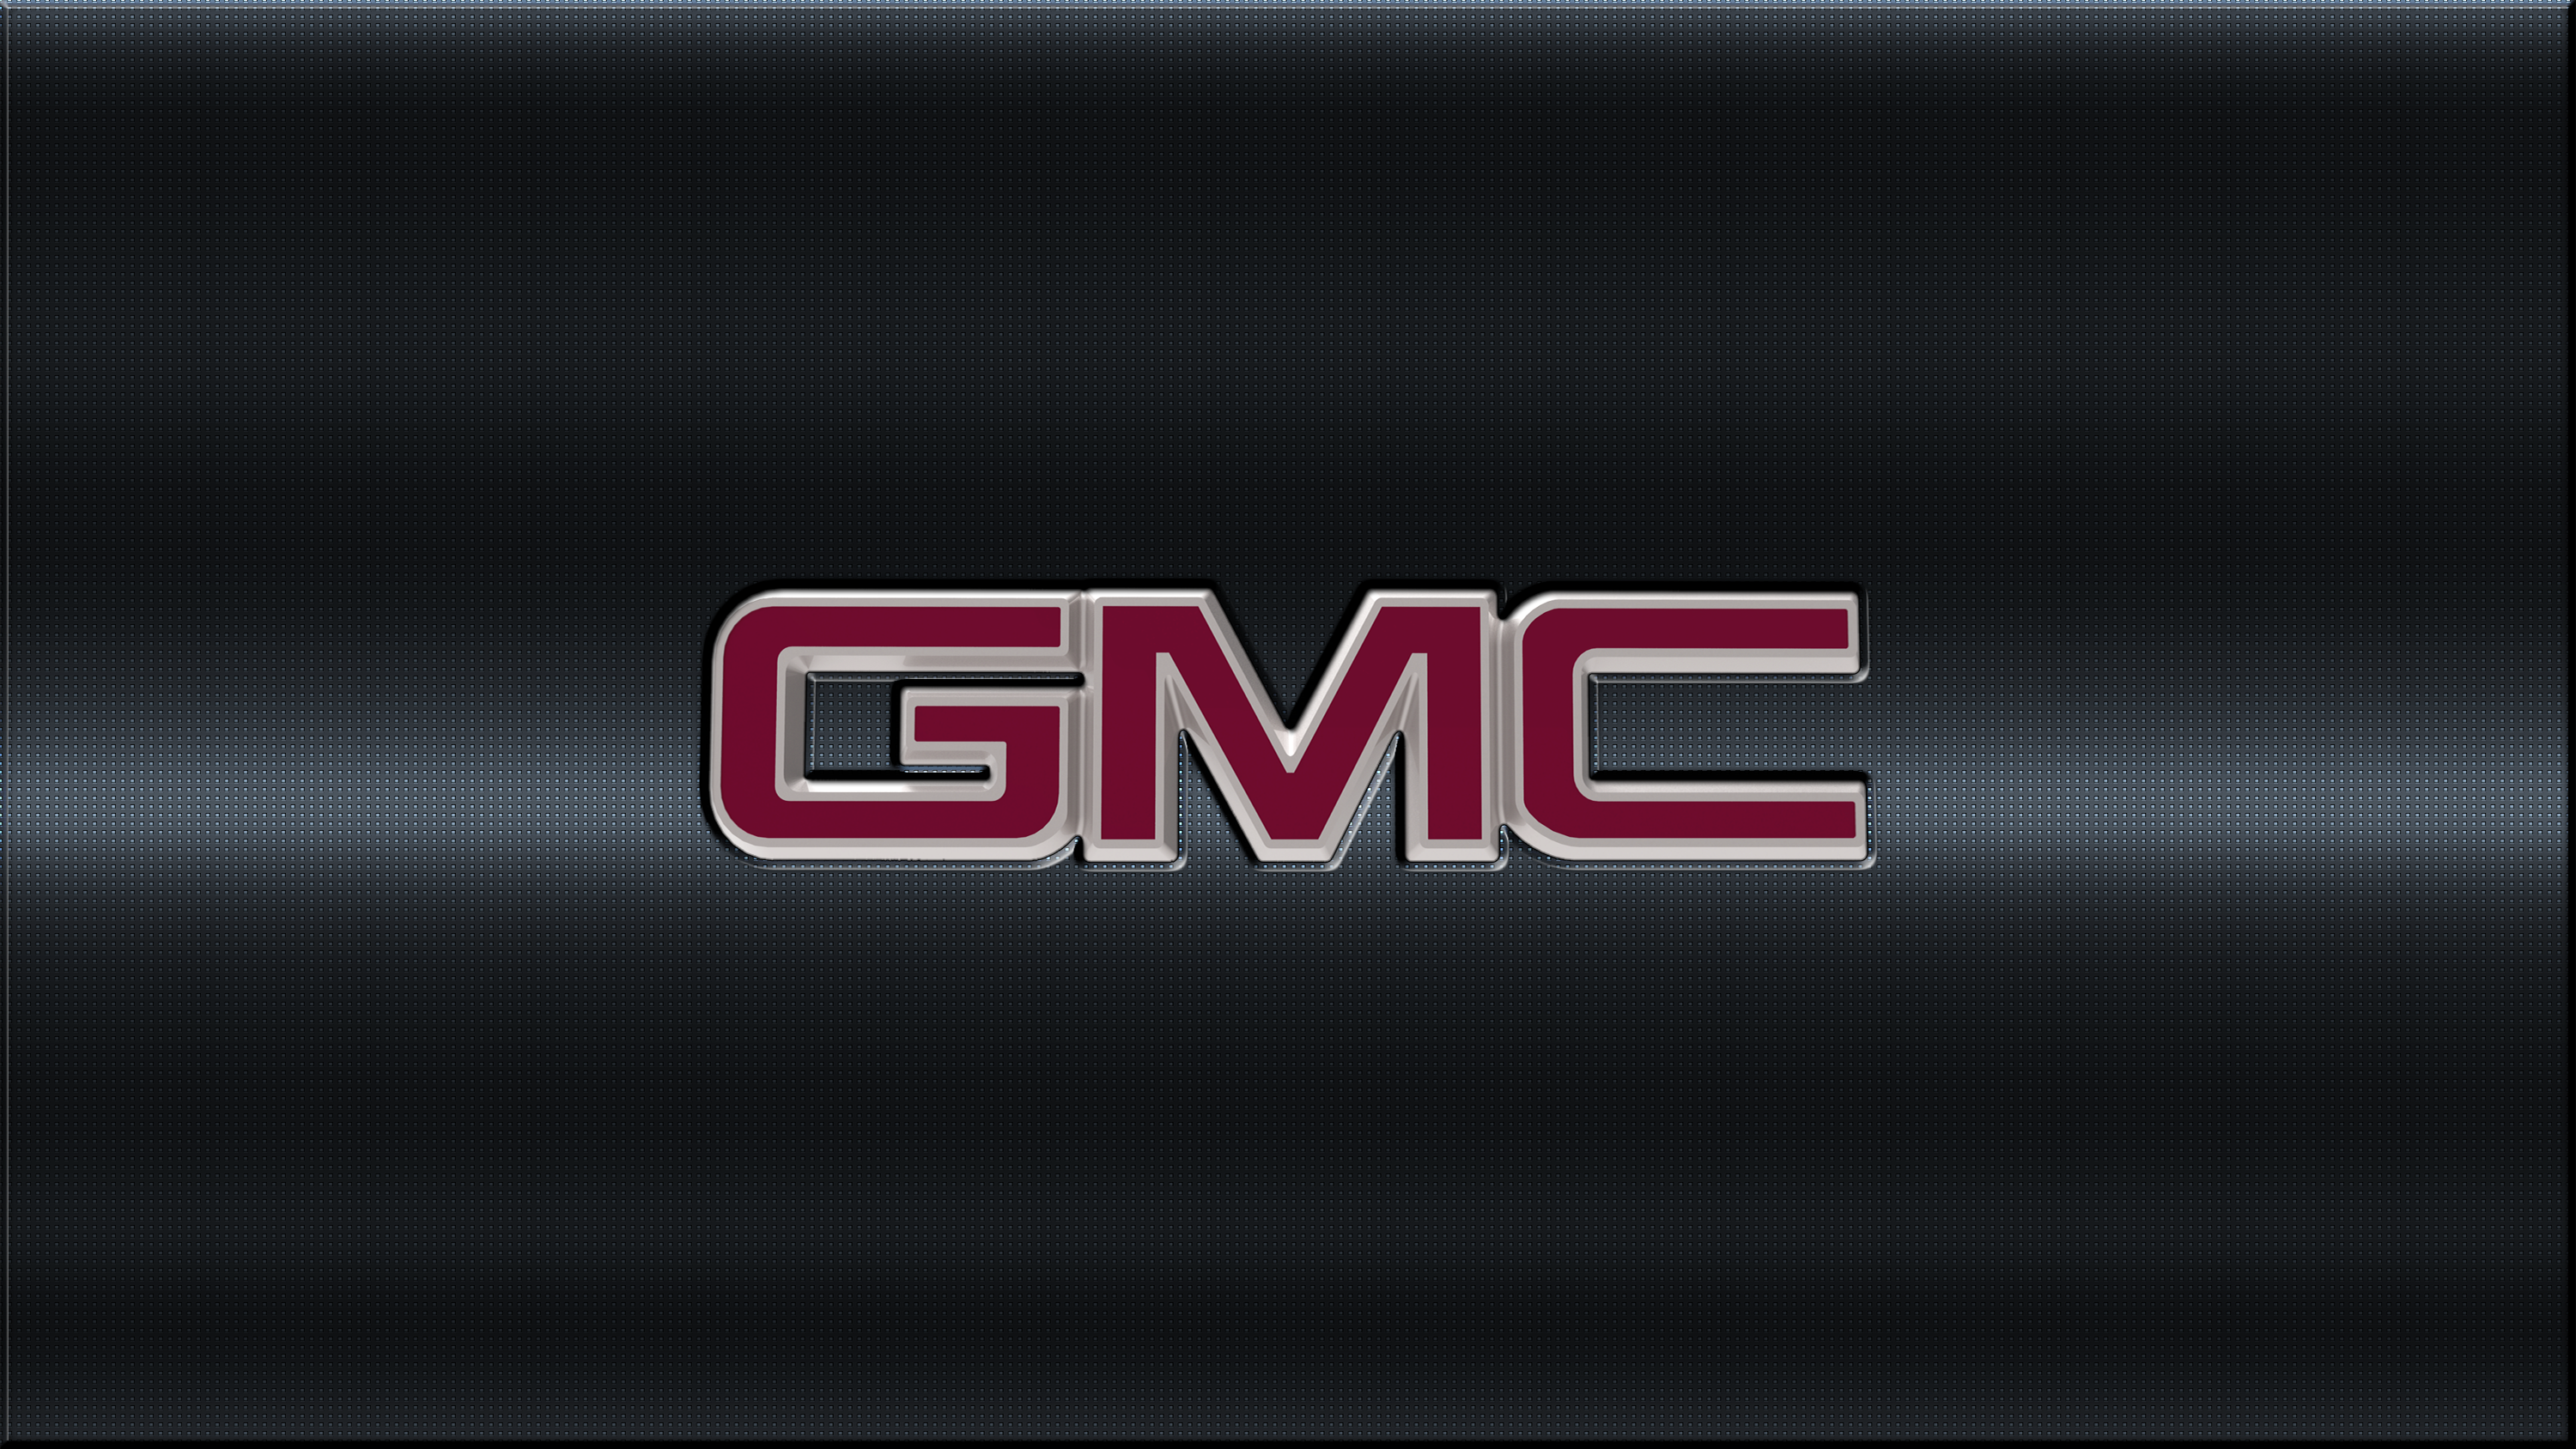 Gmc Logo Gmc Car Symbol Meaning And History Car Brand